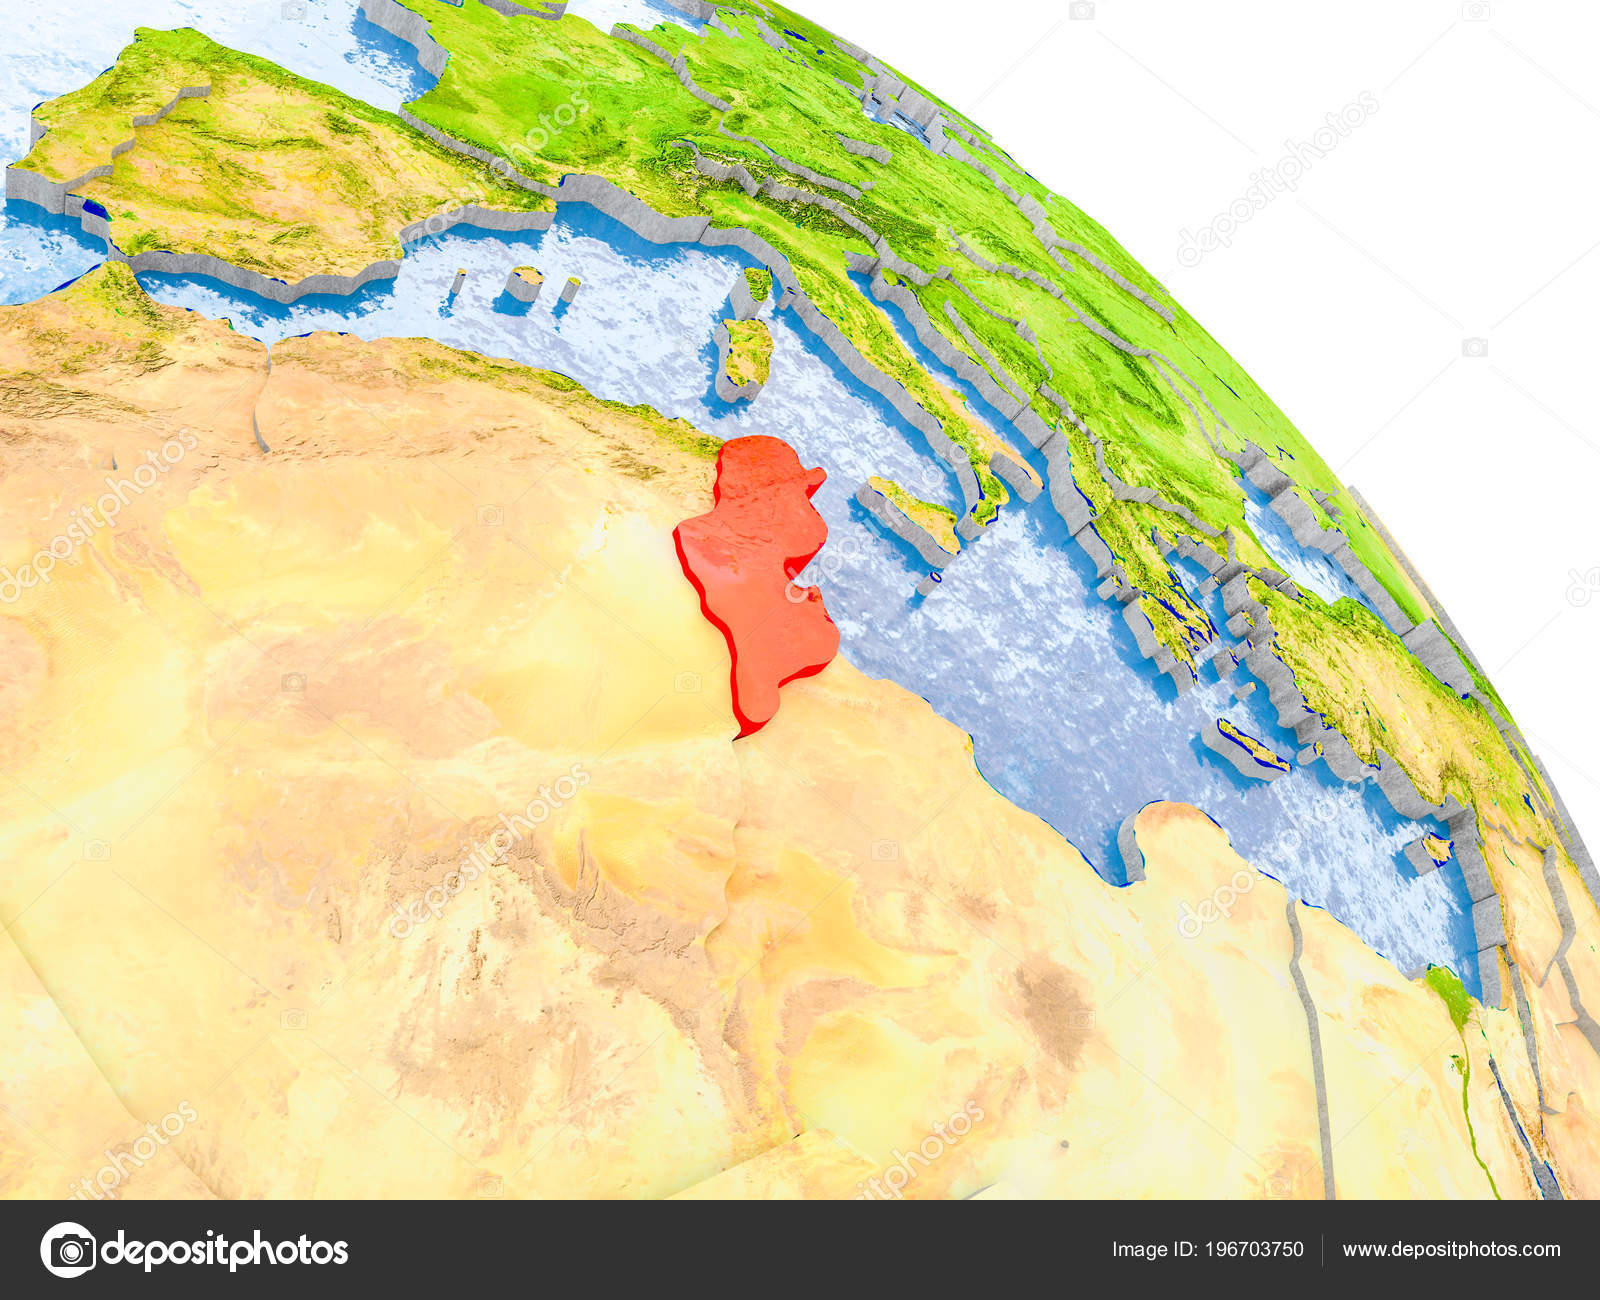 Picture of: Illustration Tunisia Highlighted Red Glob Realistic Surface Visible Country Borders Stock Photo C Tom Griger 196703750